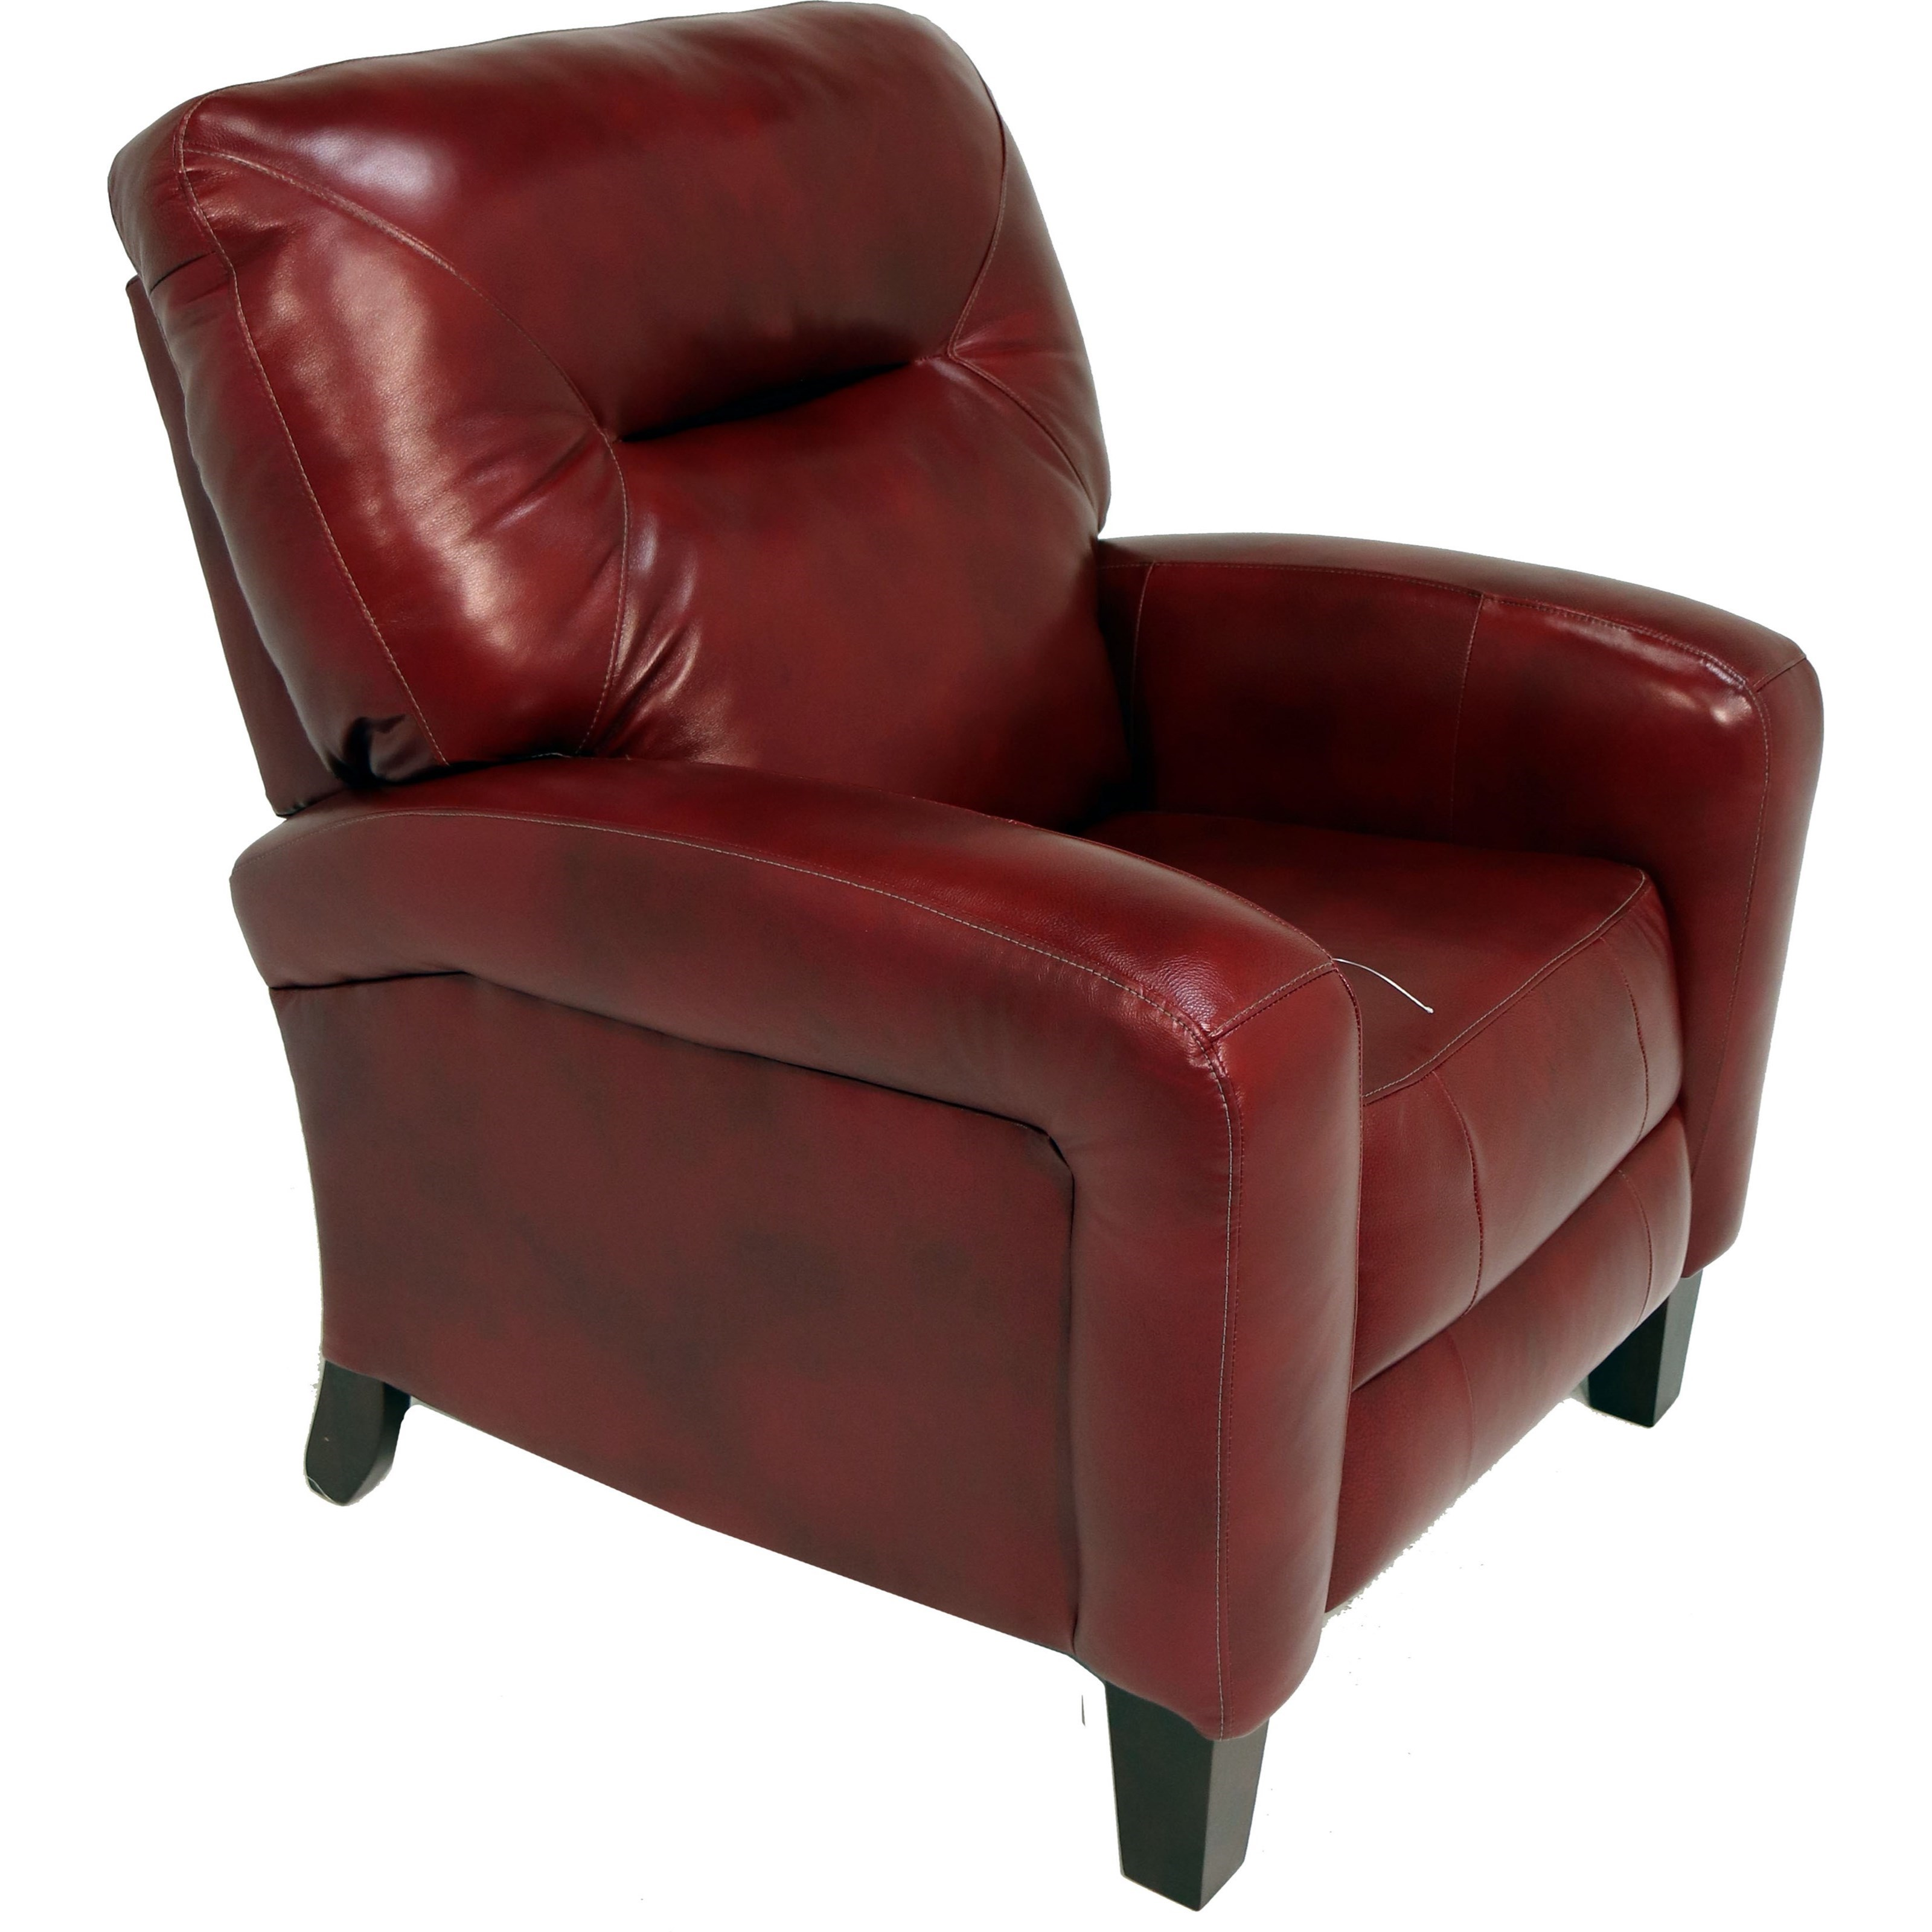 Southern Motion Recliners 0178559 Soho High Leg Recliner Becker Furniture High Leg Recliners